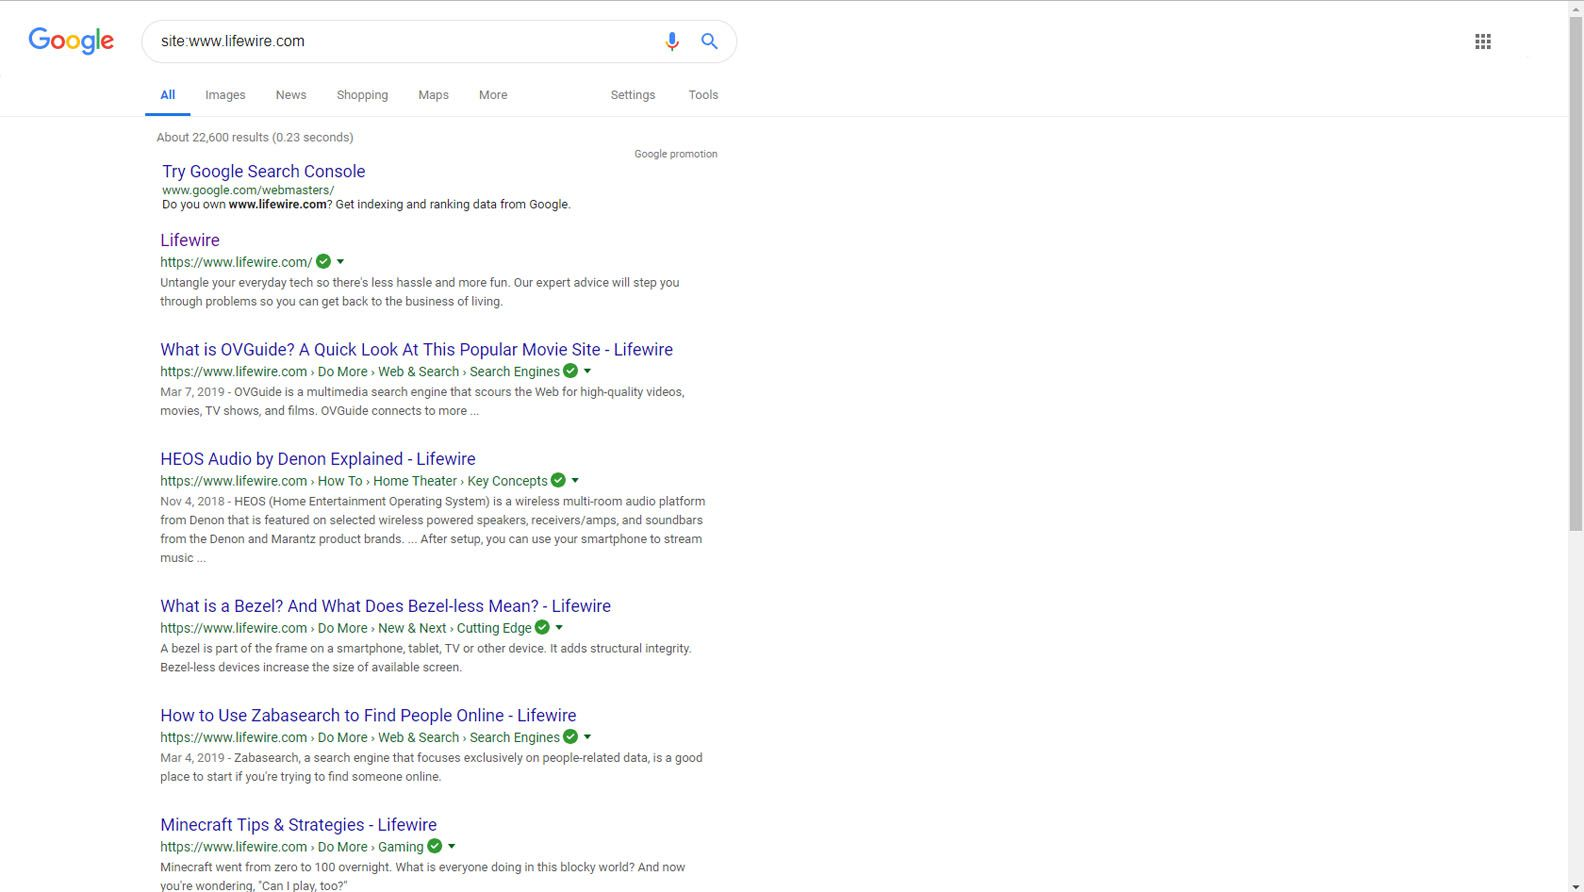 Google website page search